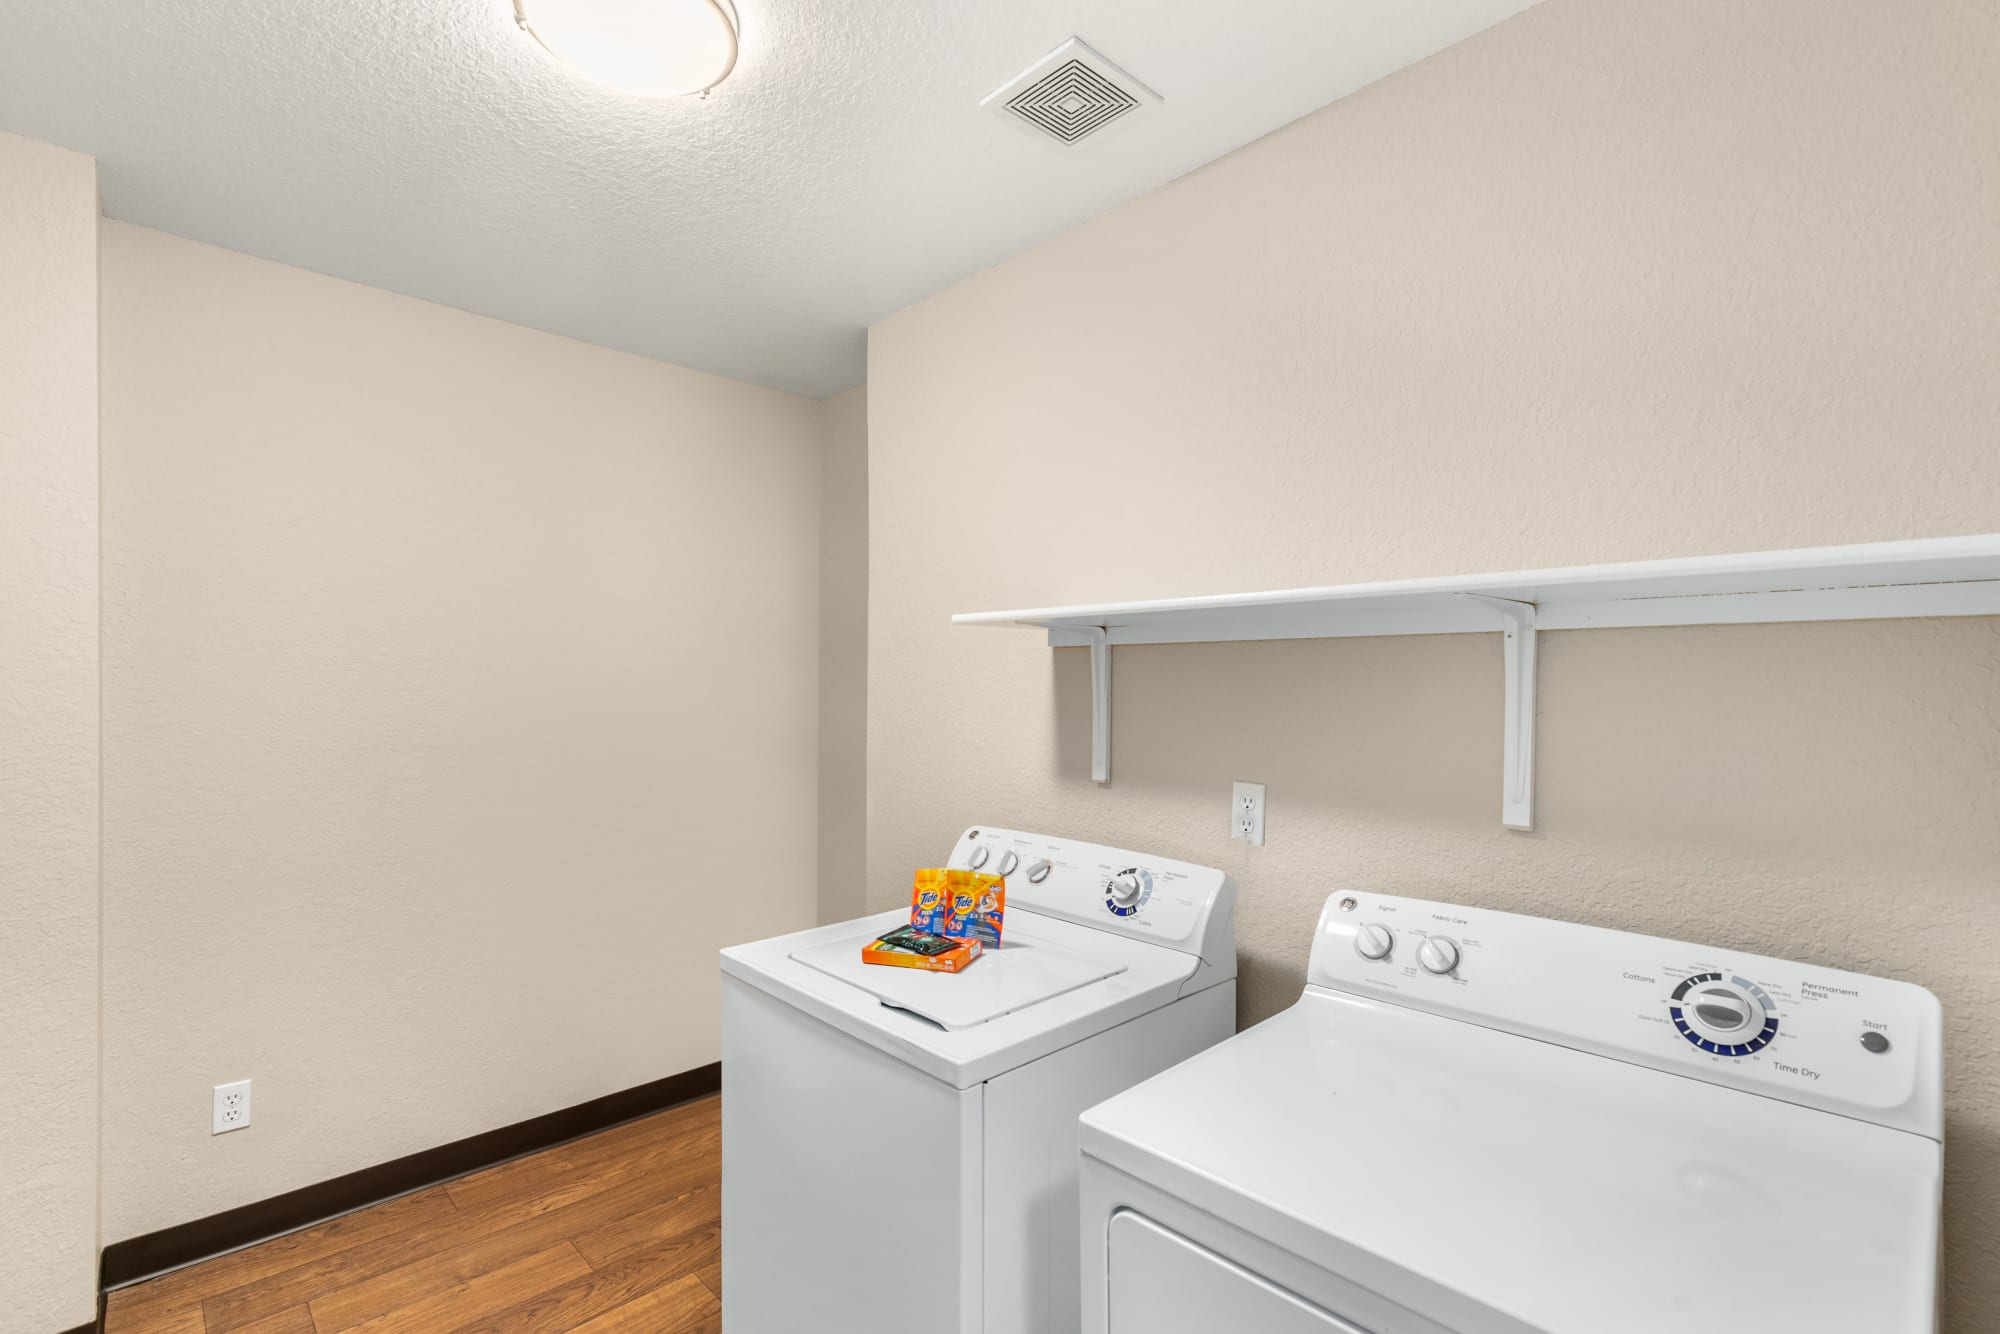 Full sized washer and dryer included in apartments at Carriage Park Apartments in Vancouver, Washington